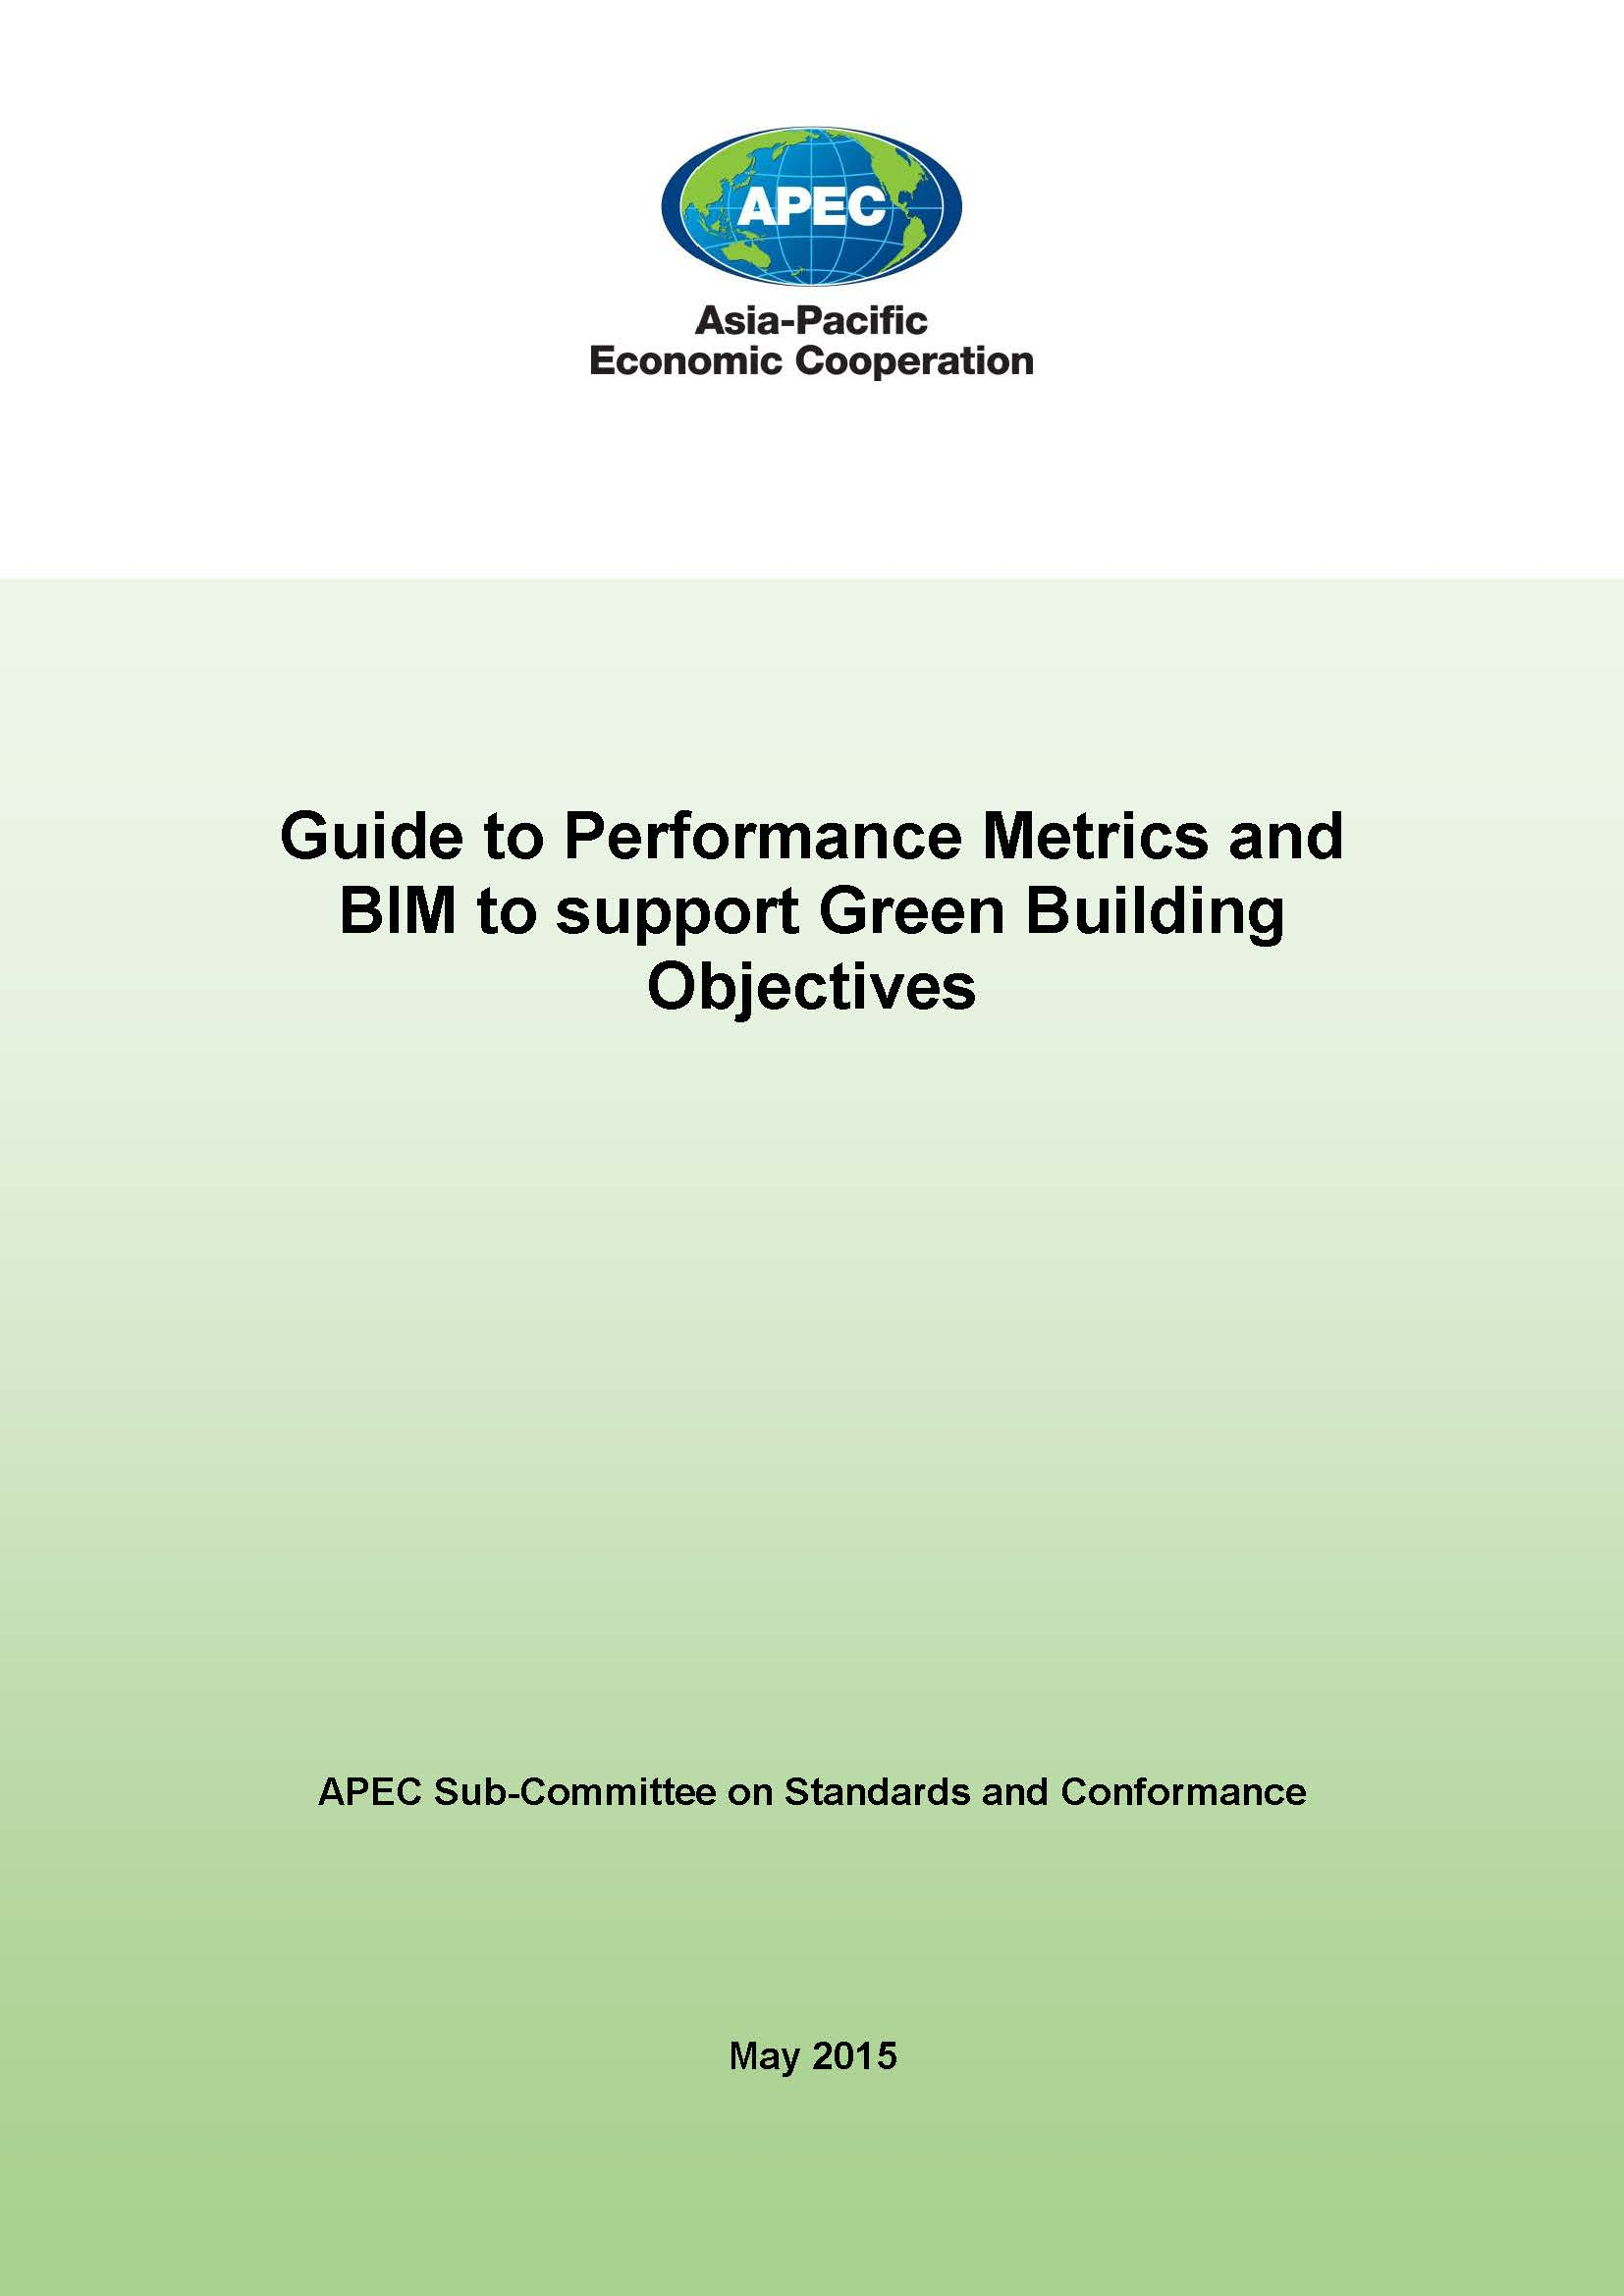 Guide to Performance Metrics and BIM to support Green Building Objectives